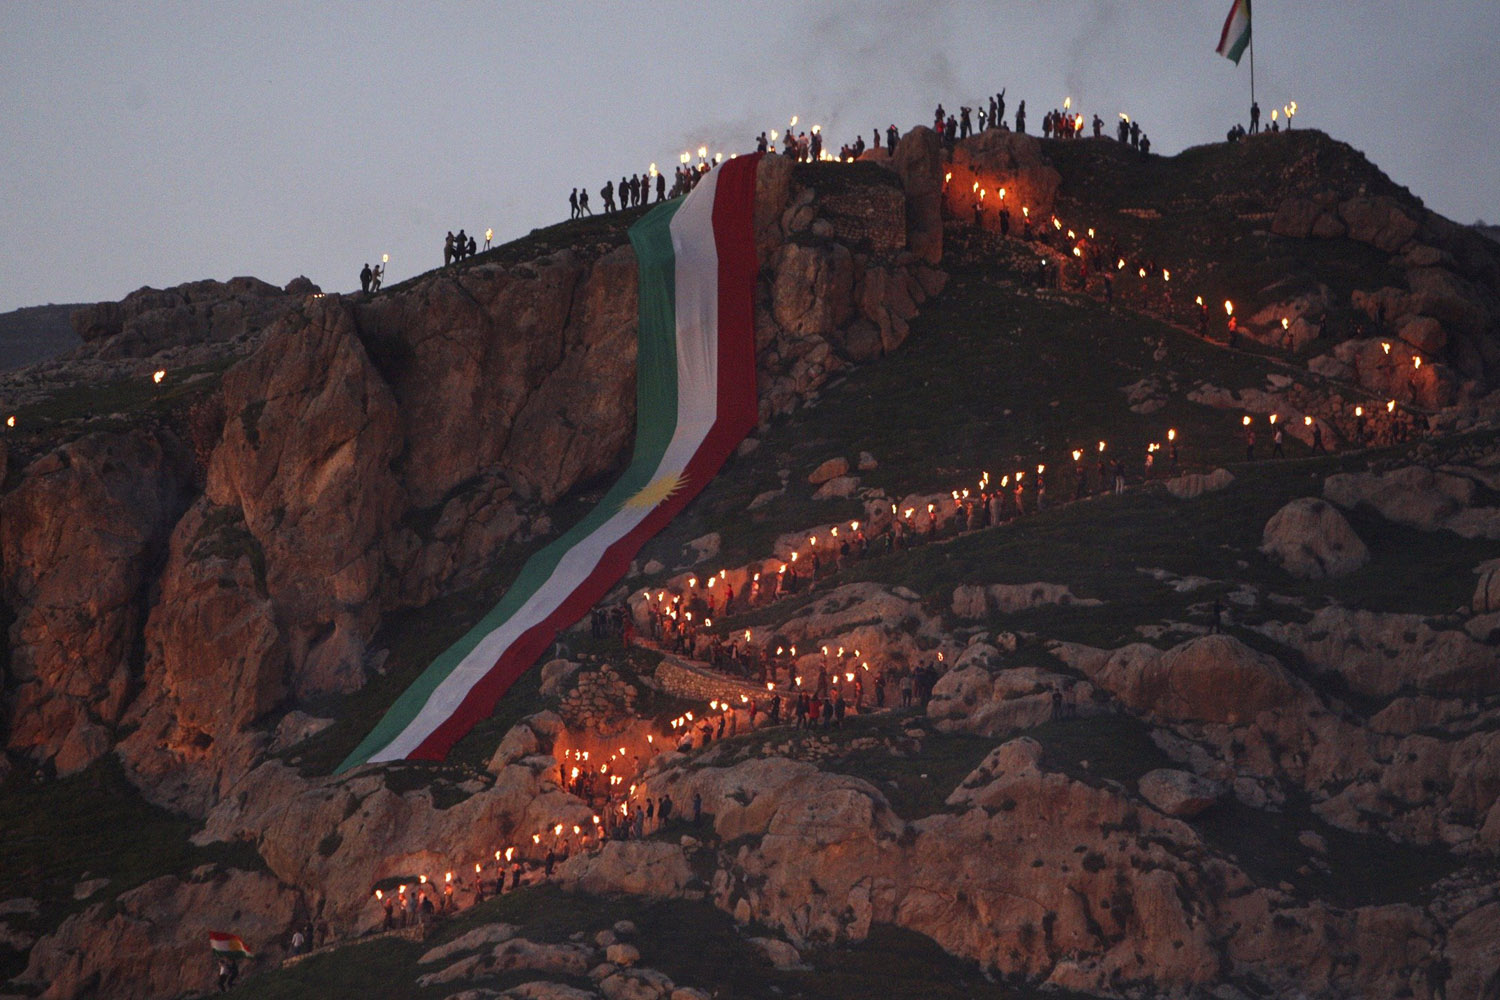 Mar. 20, 2014. Iraqi Kurdish people carry fire torches up a mountain where a giant flag of Iraq's autonomous Kurdistan region is laid, as they celebrate Newroz Day, a festival marking their spring and new year, near Dahuk, Iraq.